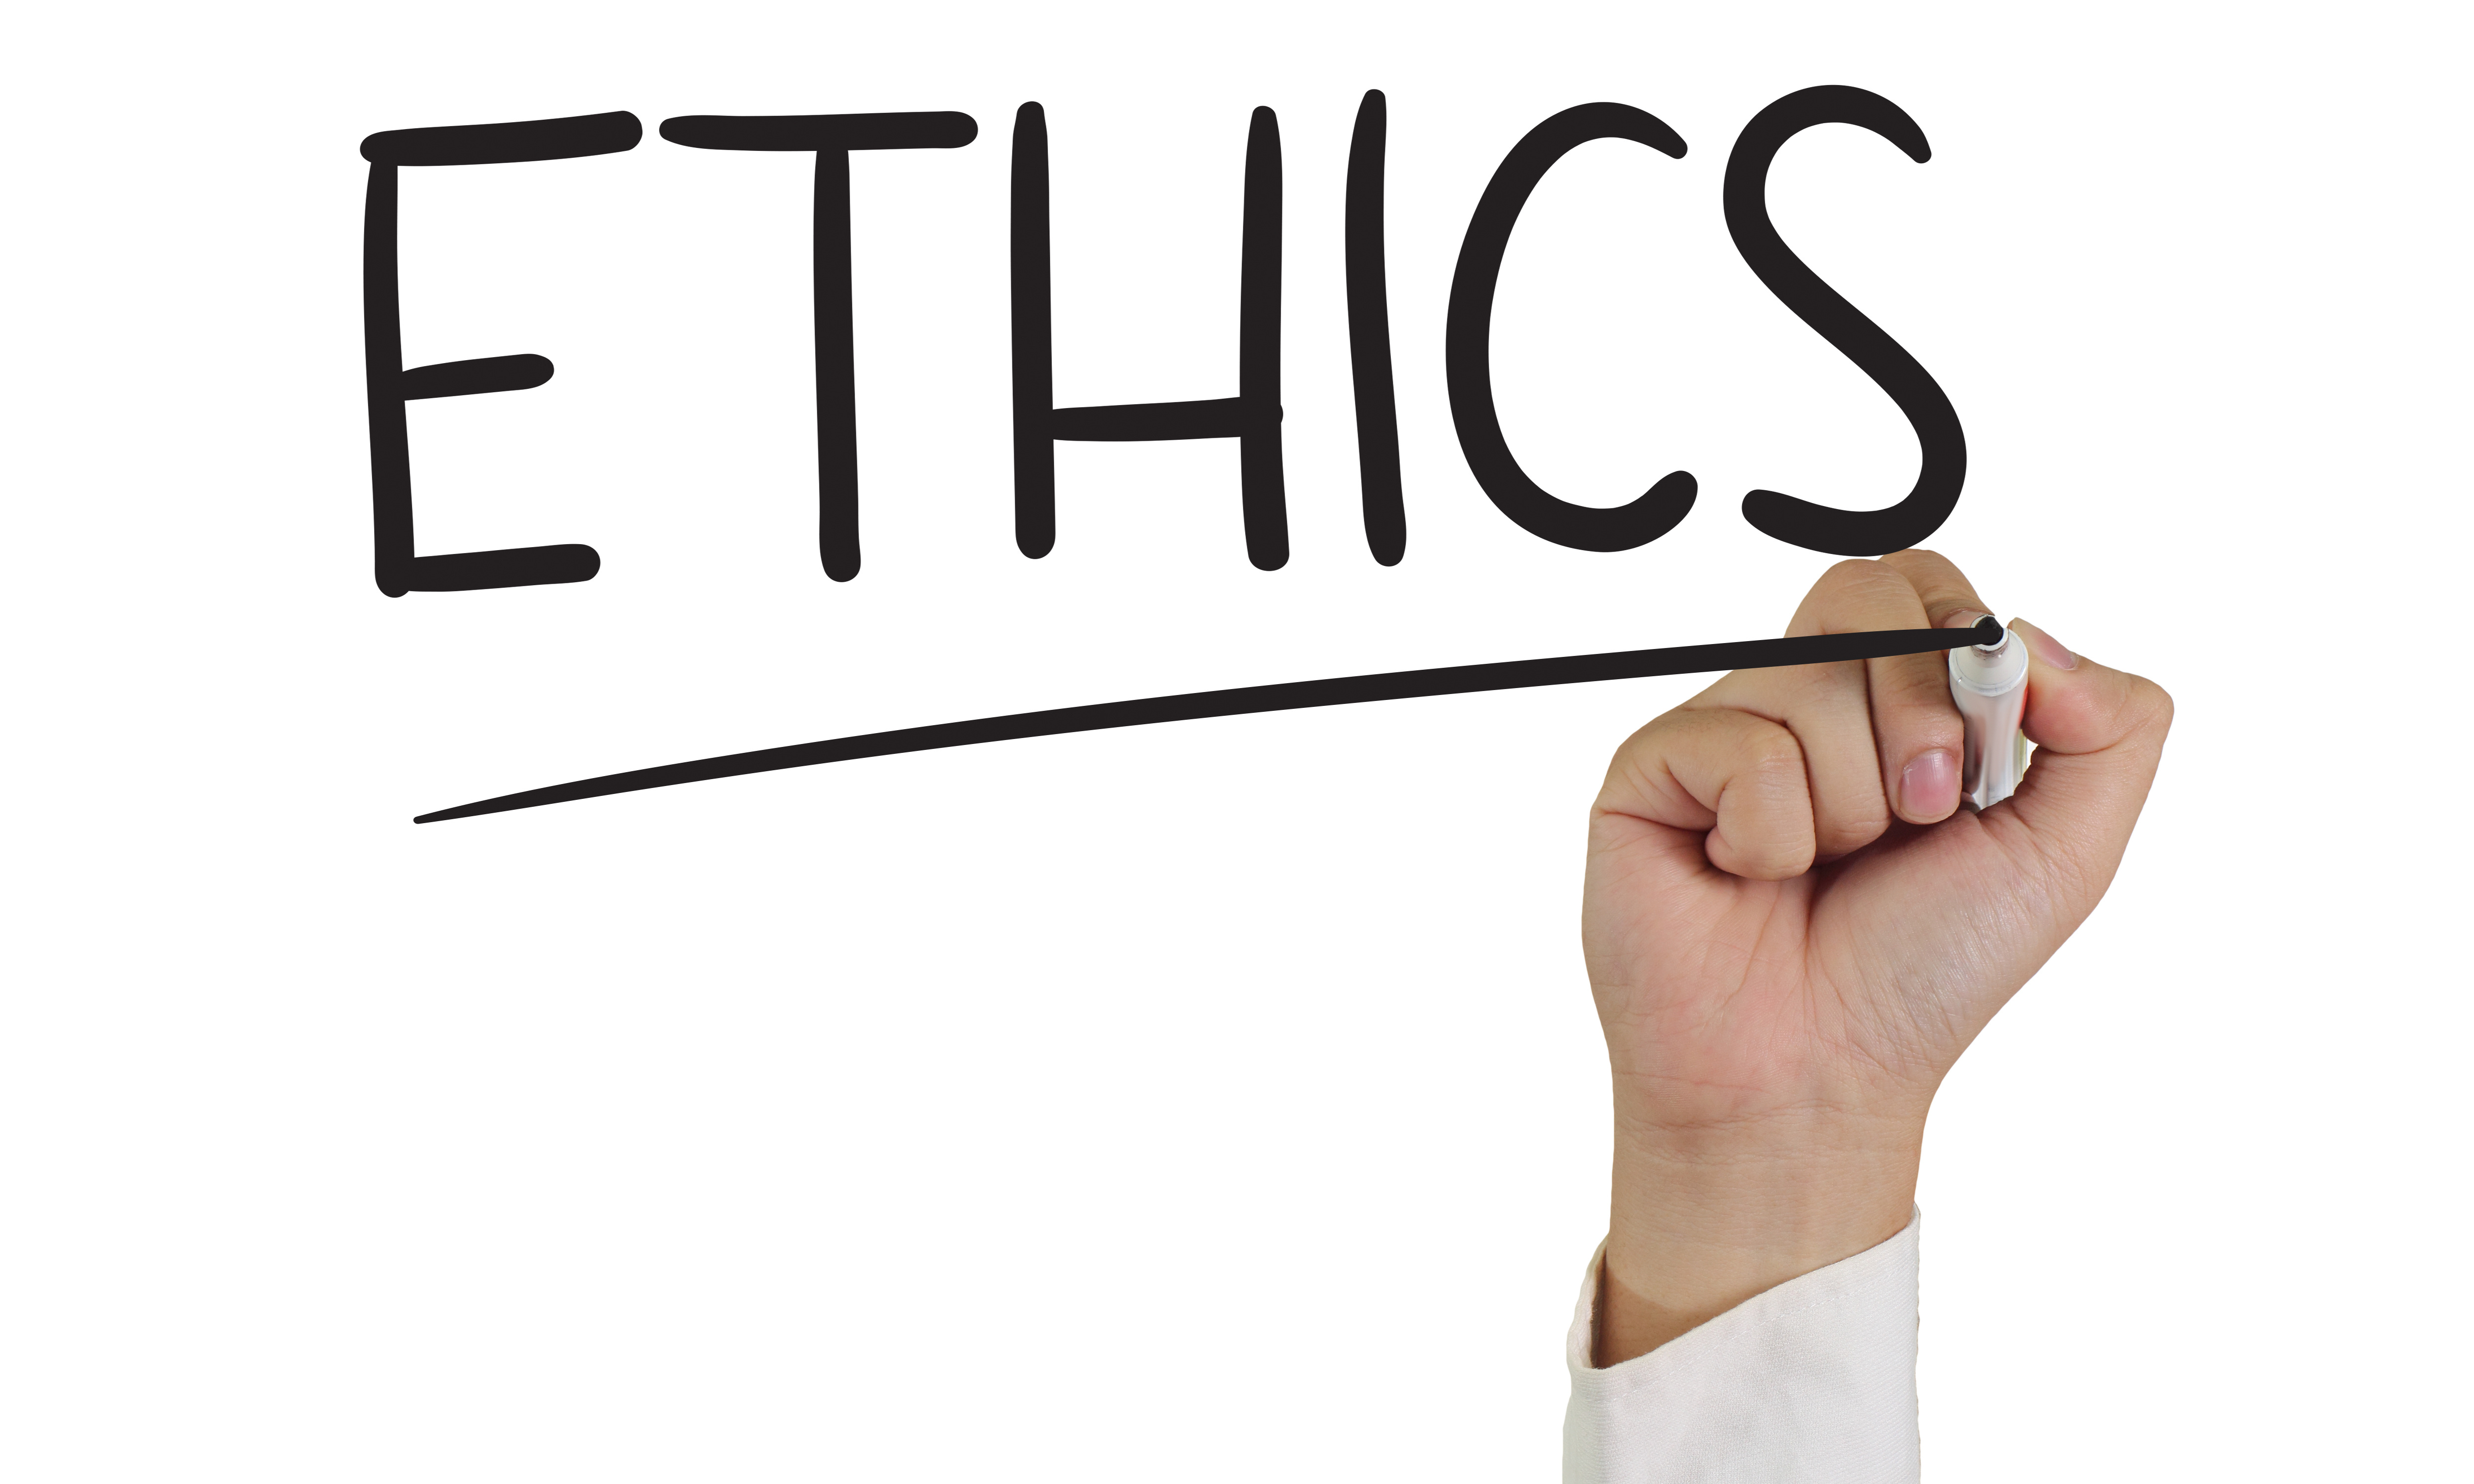 August 21, 2018 ~ The Ethics of Using A Comprehensive, Medically Based Intake Form